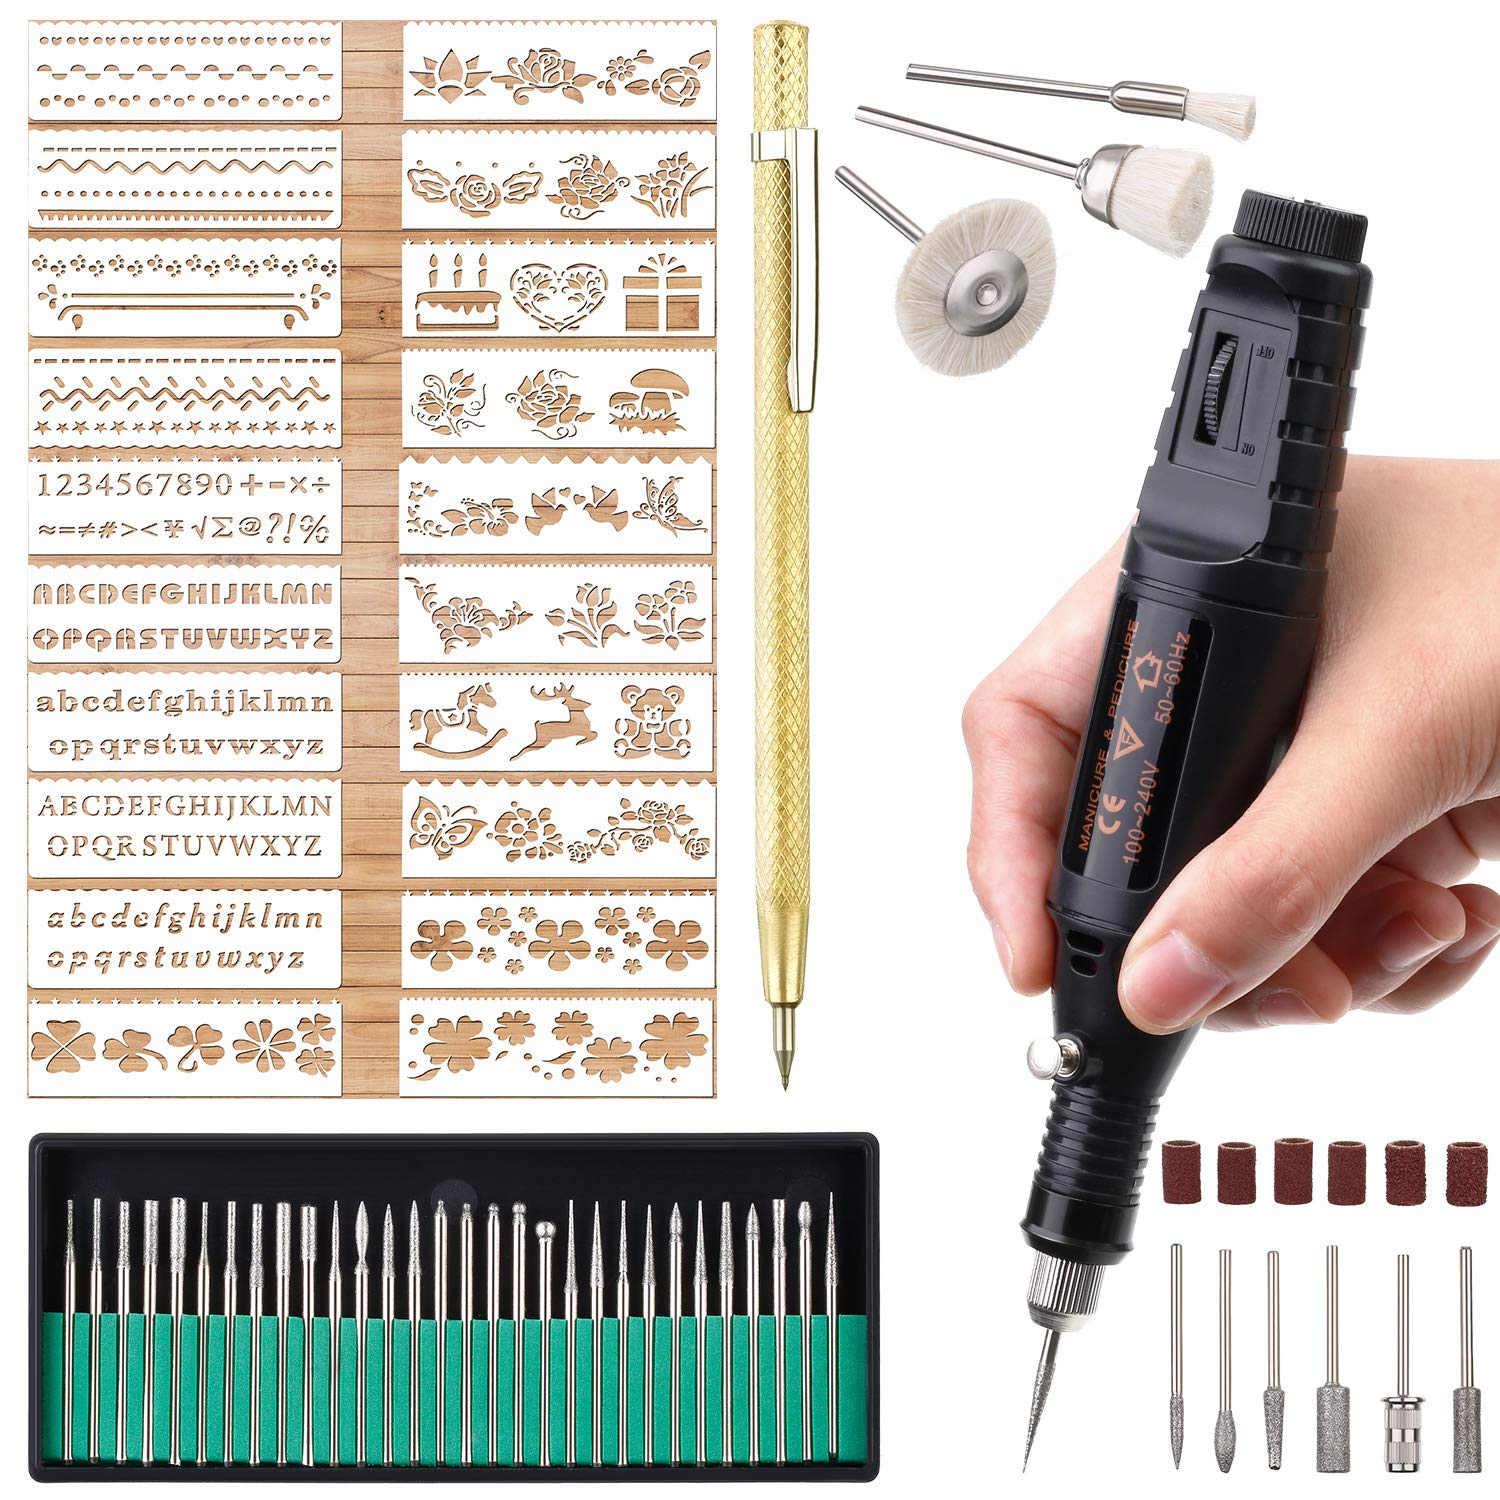 Electric Micro Engraver Pen Mini DIY Engraving Tool Kit for Metal Glass Ceramic Plastic Wood Jewelry 1 Scriber Etcher 30 Bits 6 Polishing Head 3 Wool Cleaner Bits 20 Stencils and Operating Instruction by Zonon